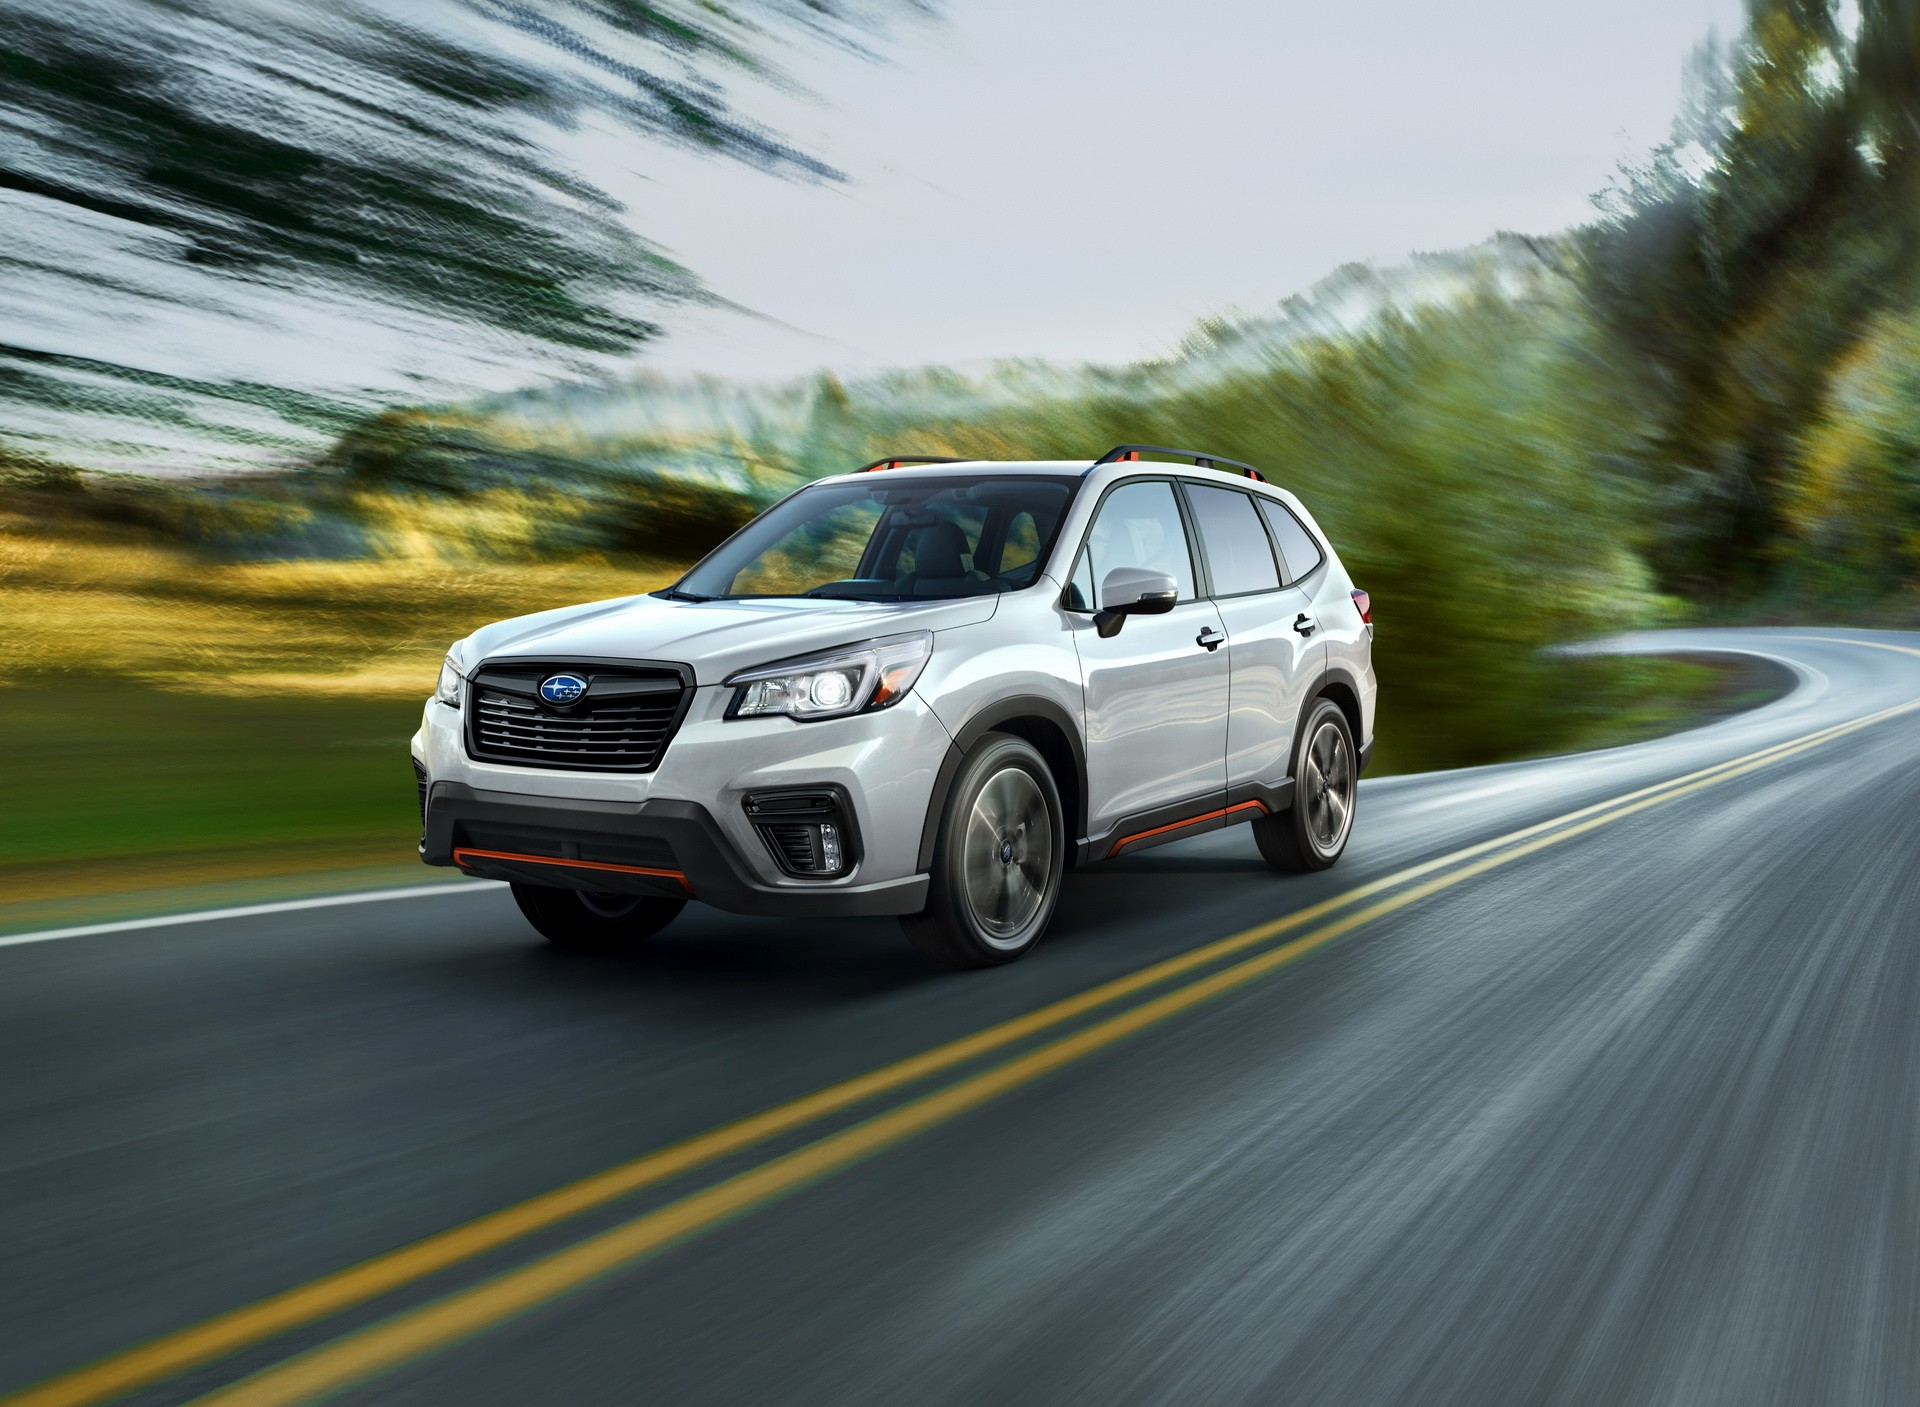 2019 subaru forester debuts in new york looks familiar yet new autoevolution. Black Bedroom Furniture Sets. Home Design Ideas